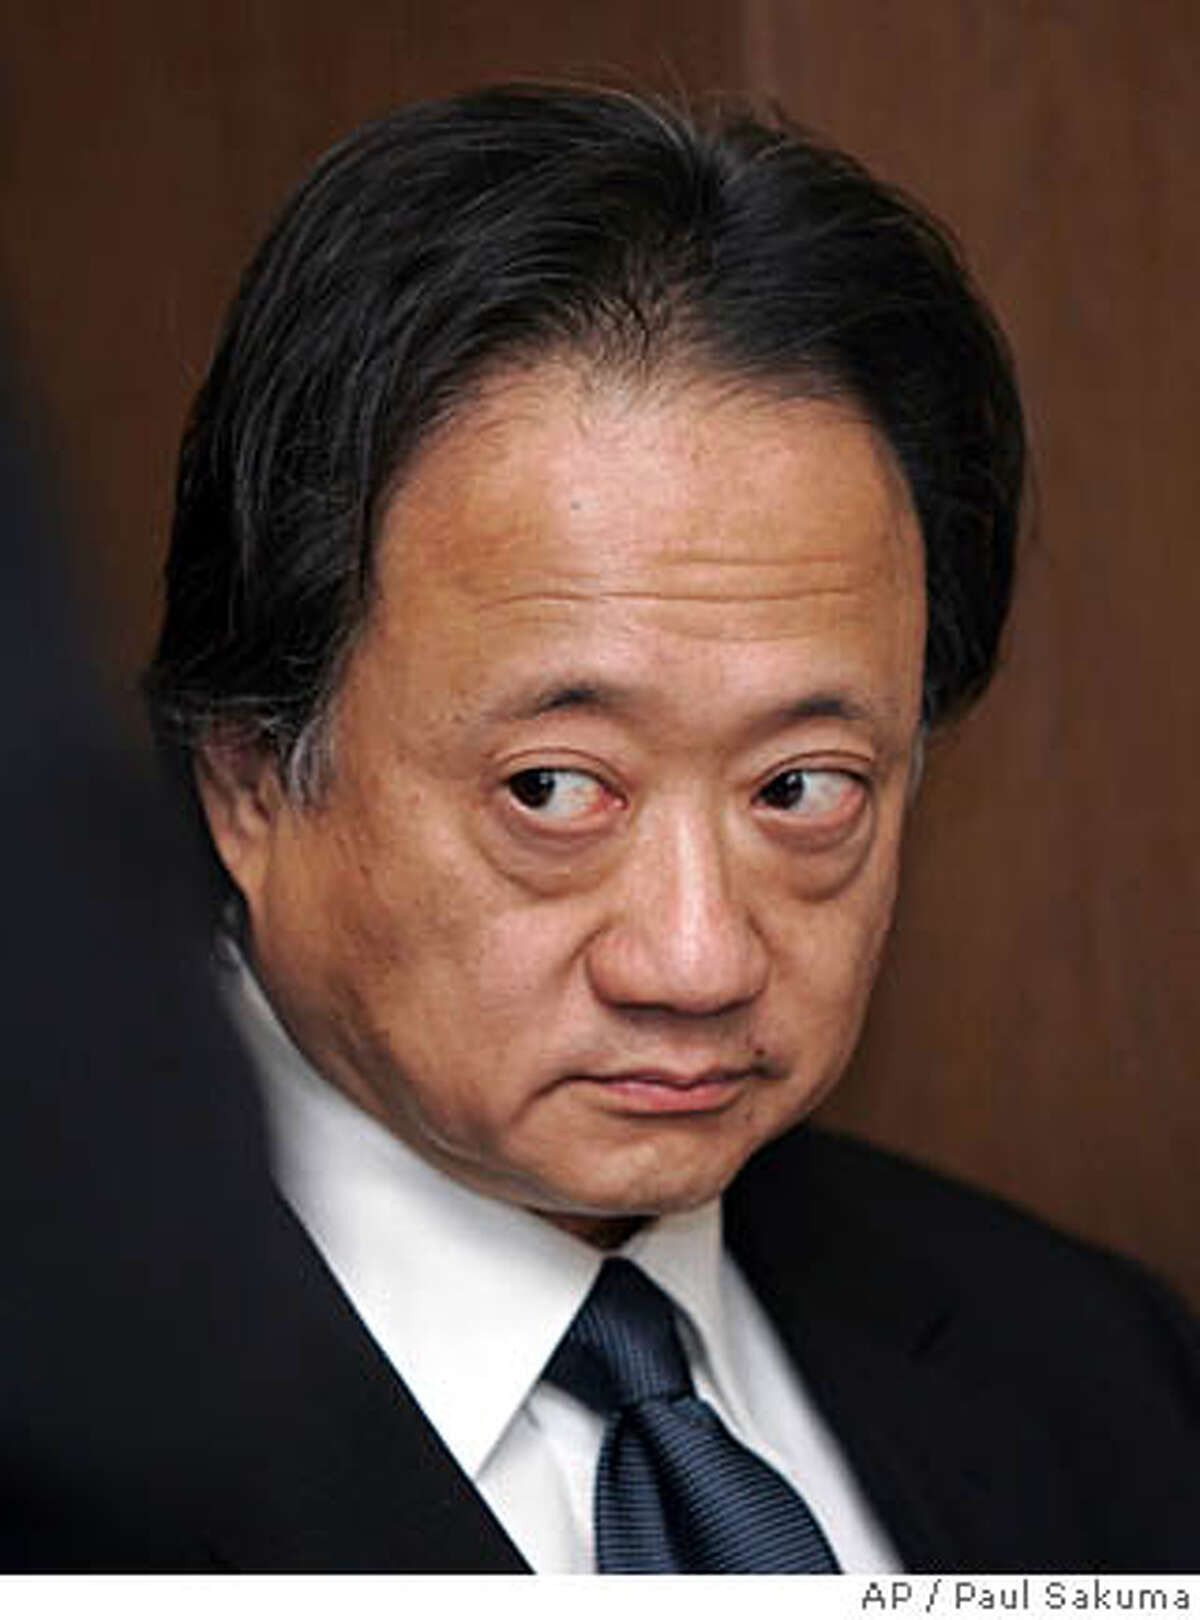 Norman Hsu prepares to surrender as he arrives at a San Mateo County Superior Court in Redwood City, Calif., Friday, Aug. 31, 2007. Hsu, a top Democratic fundraiser wanted as a fugitive in California, turned himself in Friday to face a grand theft charge. After reports surfaced this week of Hsu's fugitive status in California, Sen. Hillary Rodham Clinton, (D-NY) joined other candidates in returning thousands of dollars Hsu raised. (AP Photo/Paul Sakuma)